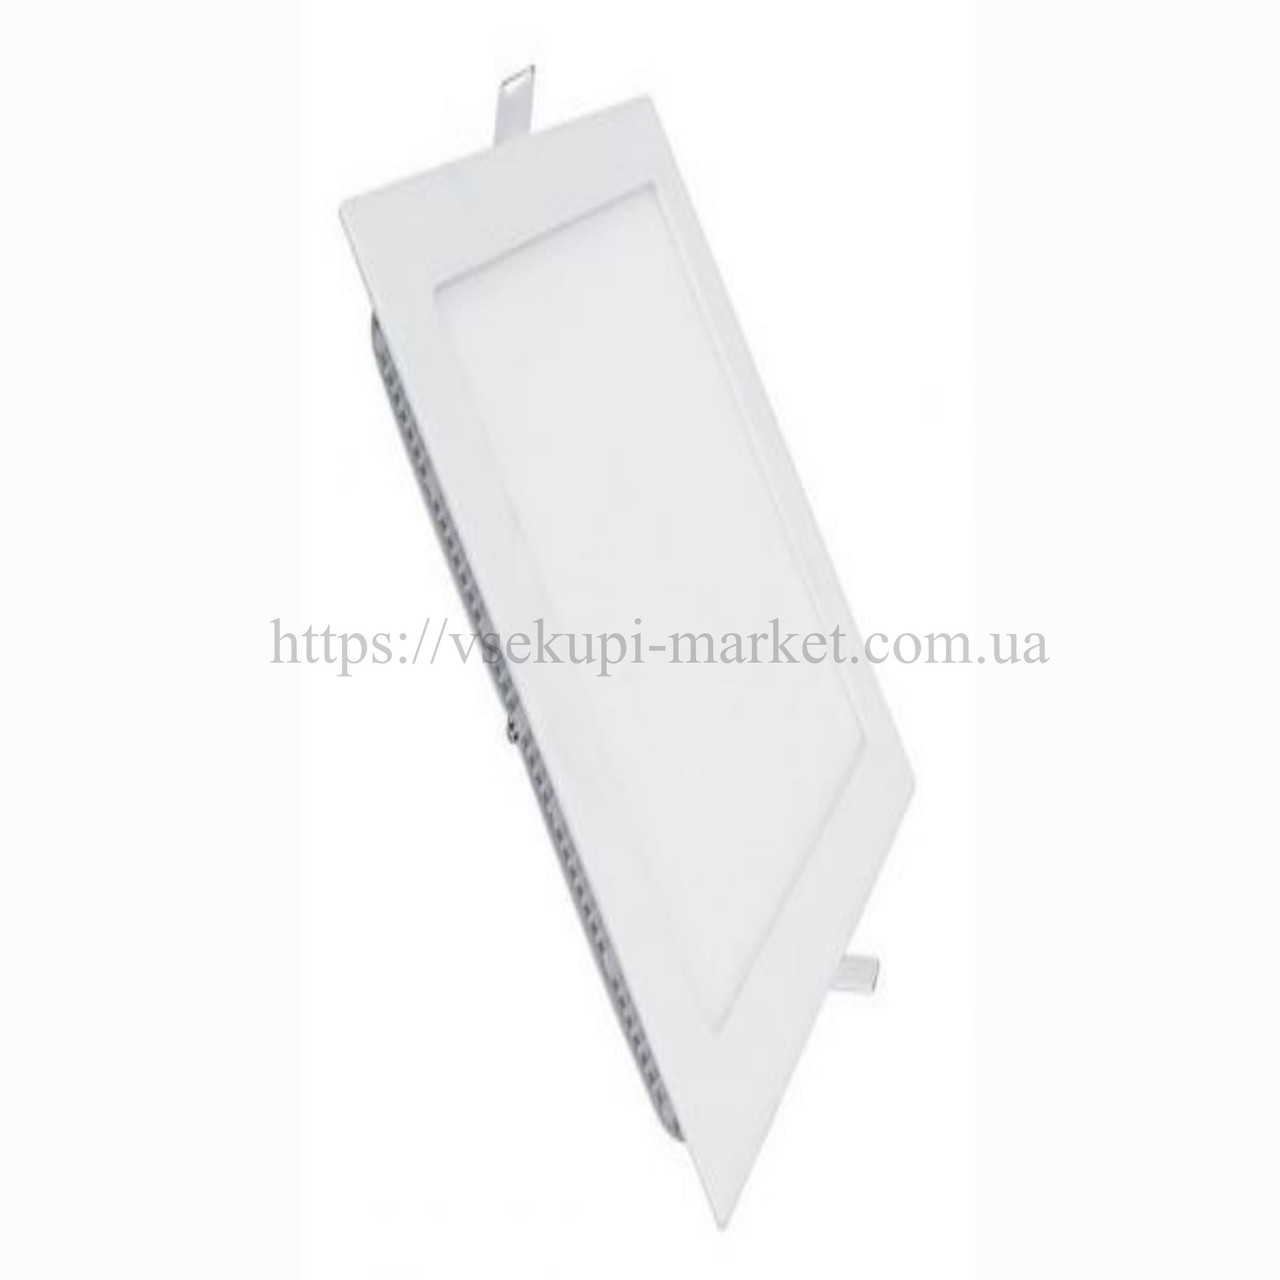 Светильник LED PANEL RIGHT HAUSEN квадрат SIMPLE 6W 4000K